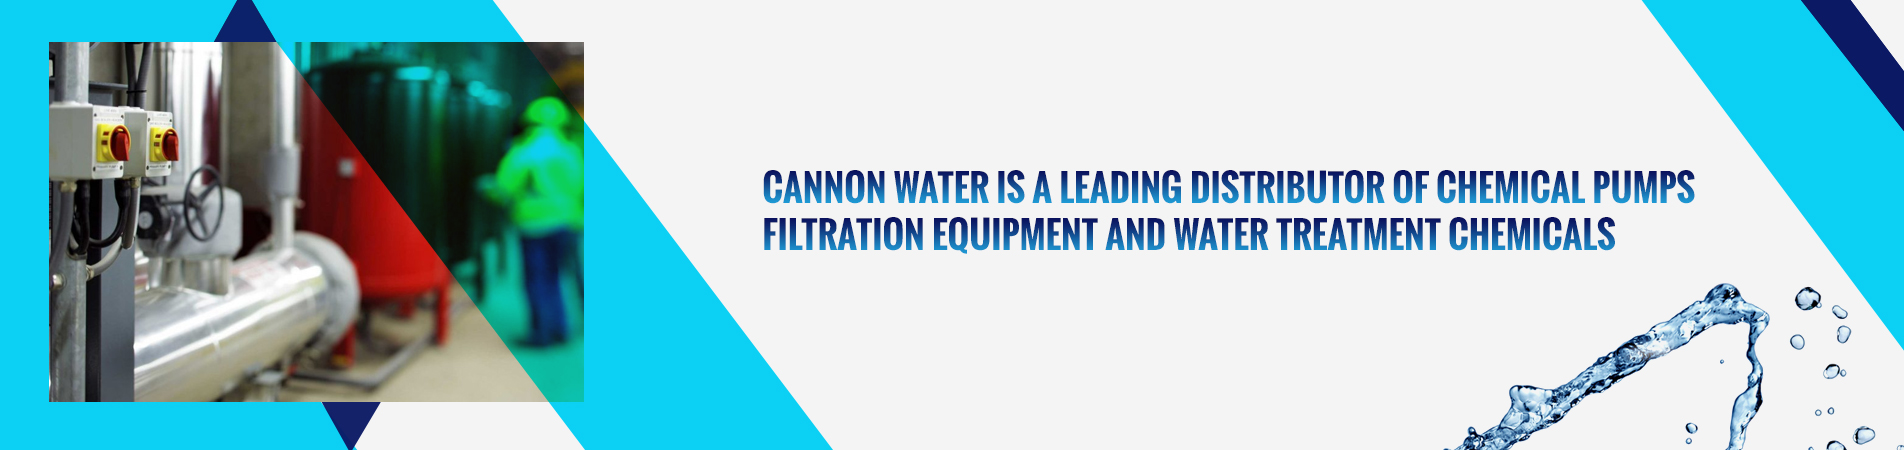 leading distributor for chemical pumps filtration equipment